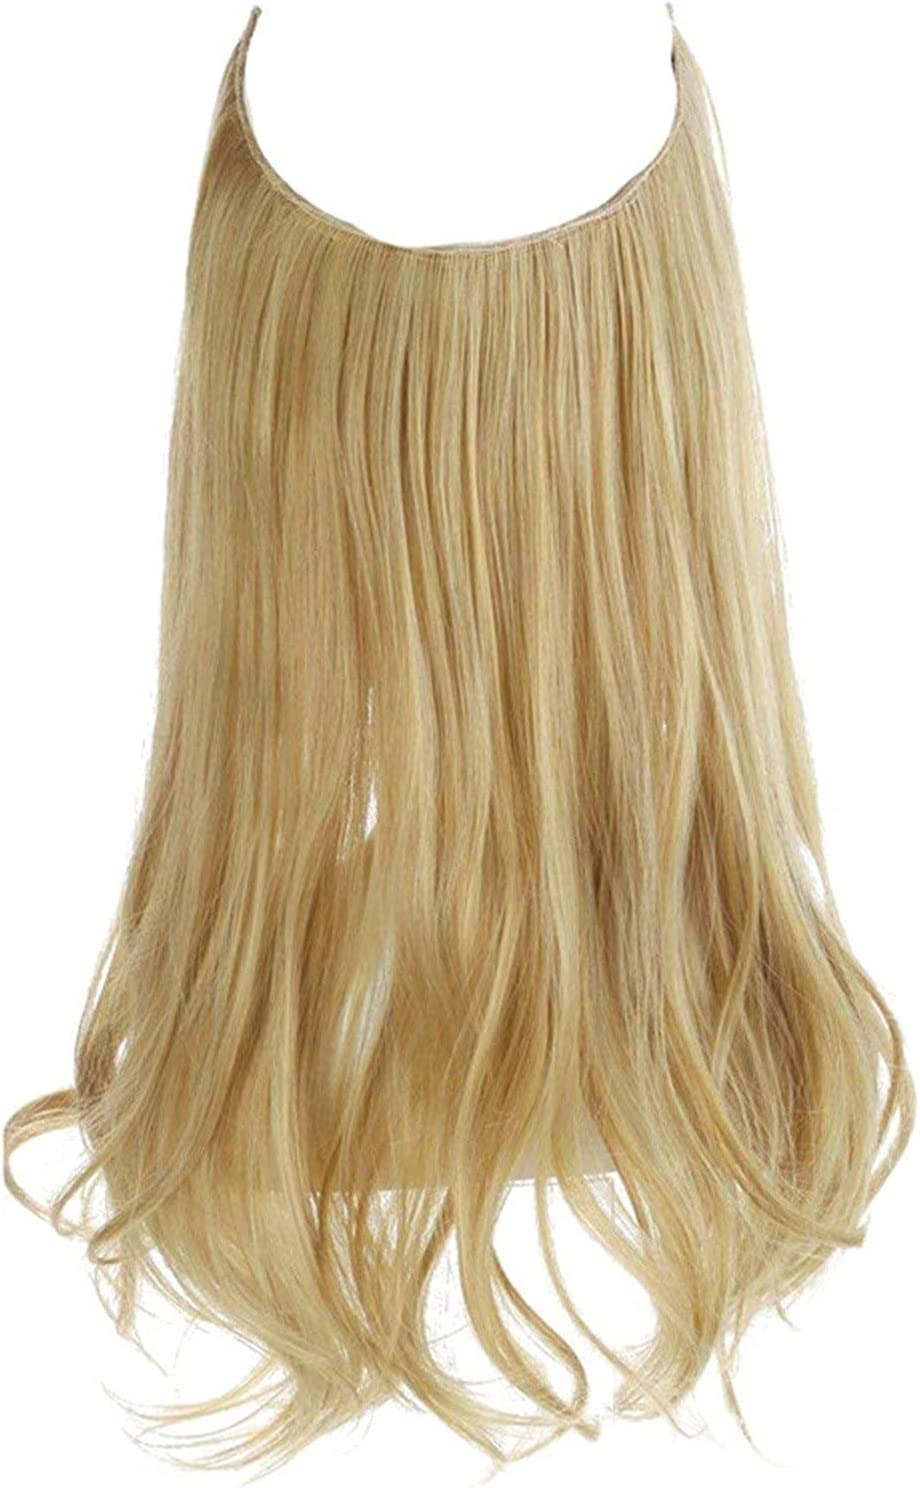 SHENYUAN Hair Extensions 12